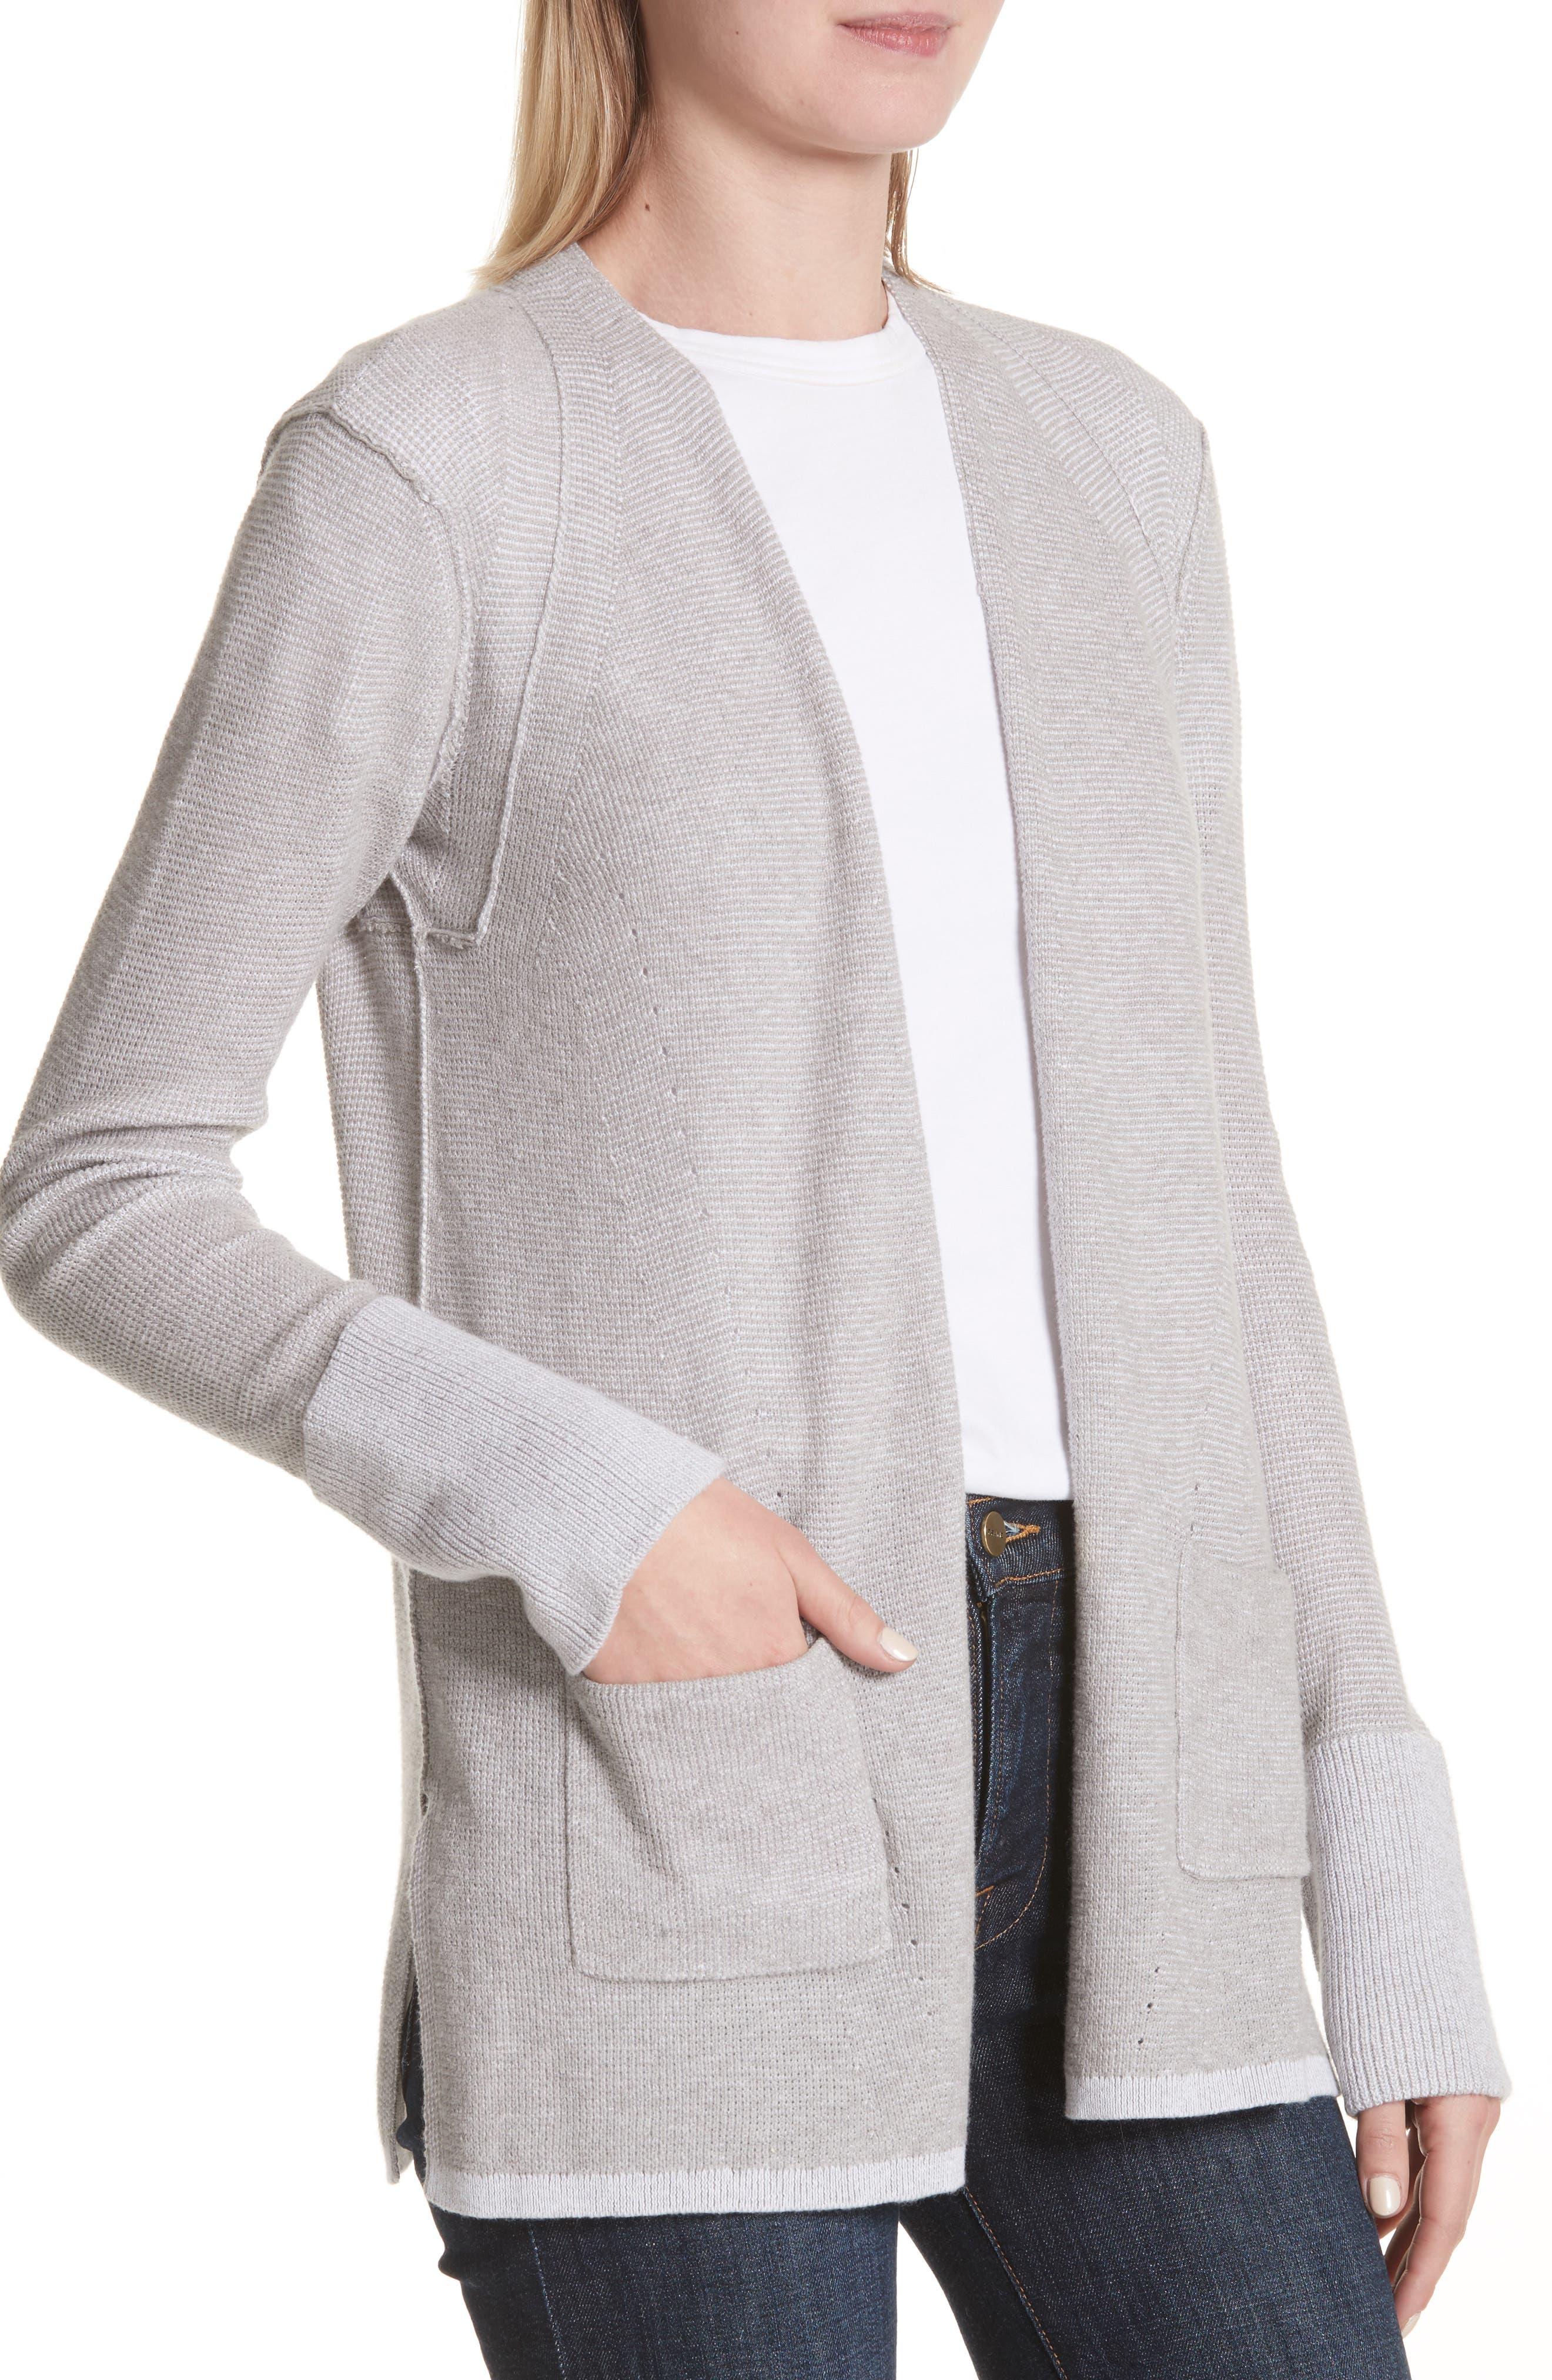 Cotton & Cashmere Waffle Knit Cardigan,                             Alternate thumbnail 4, color,                             055